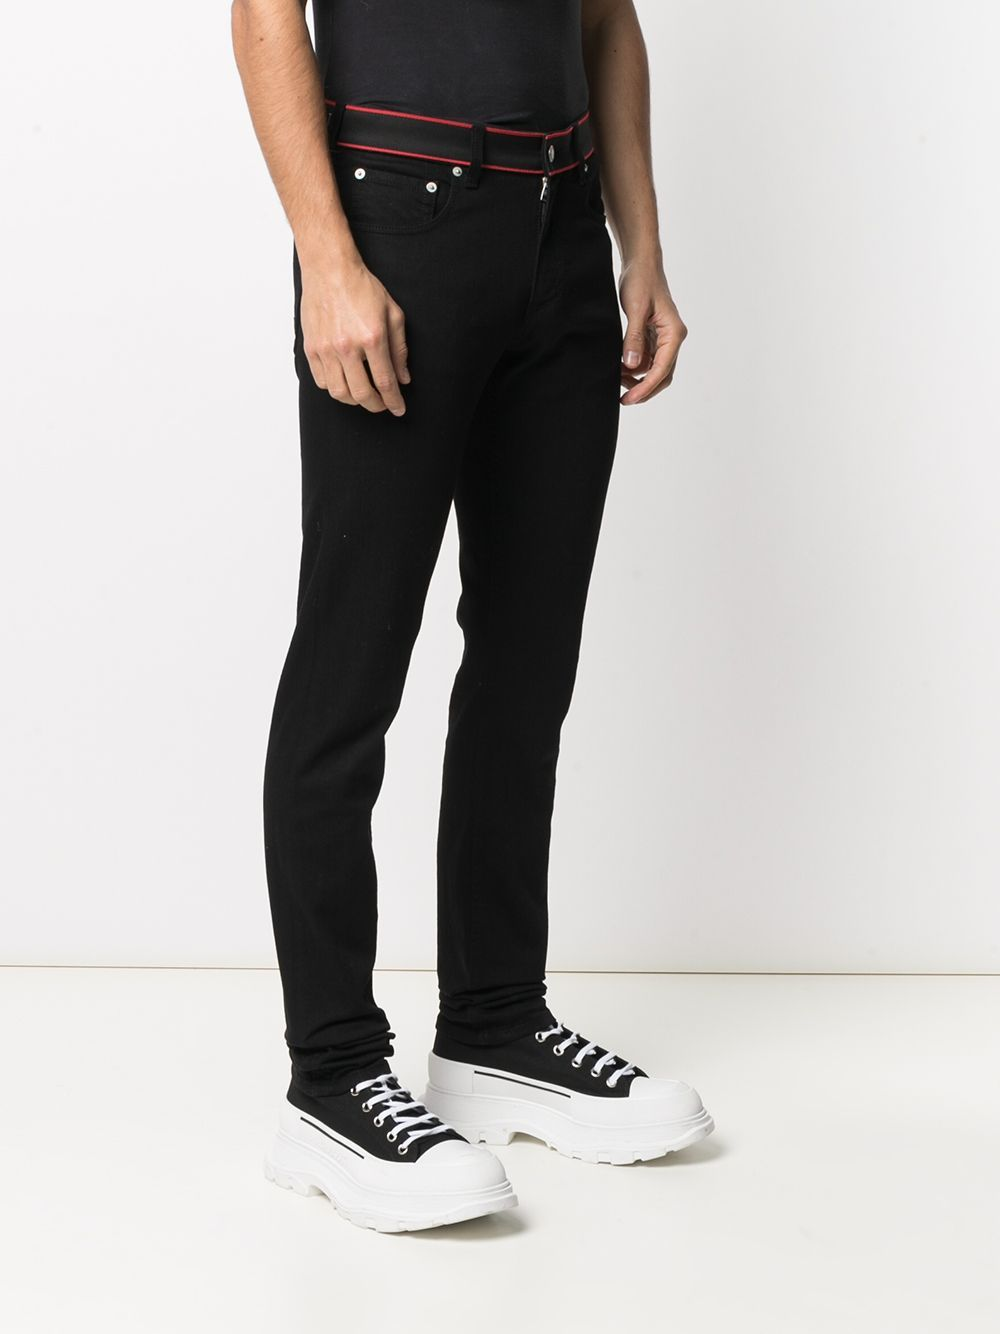 ALEXANDER MCQUEEN Slim-fit jeans Black - Maison De Fashion